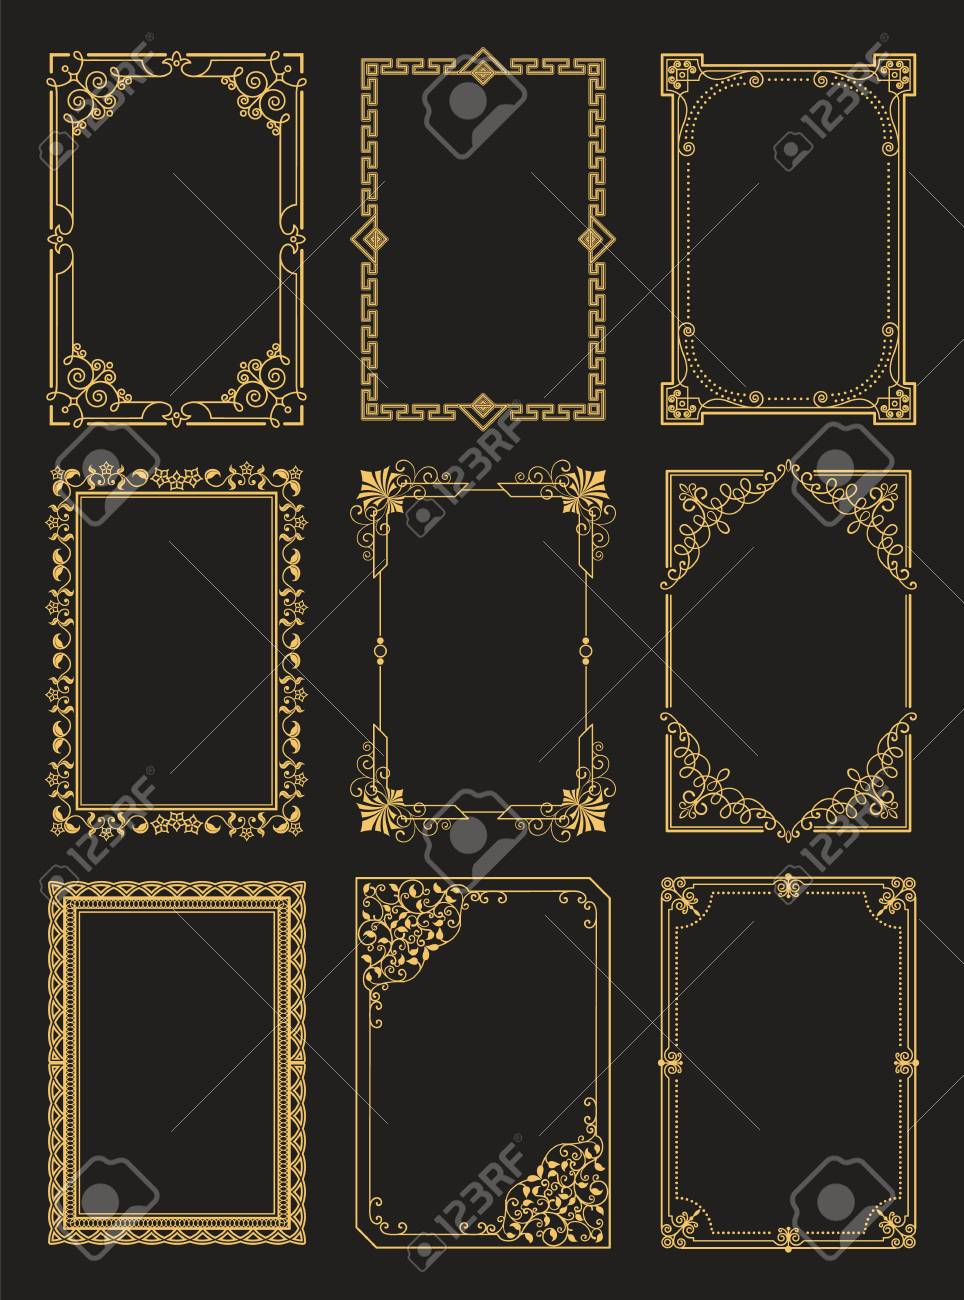 Vintage Frames Collection Golden Borders Isolated - 101965601